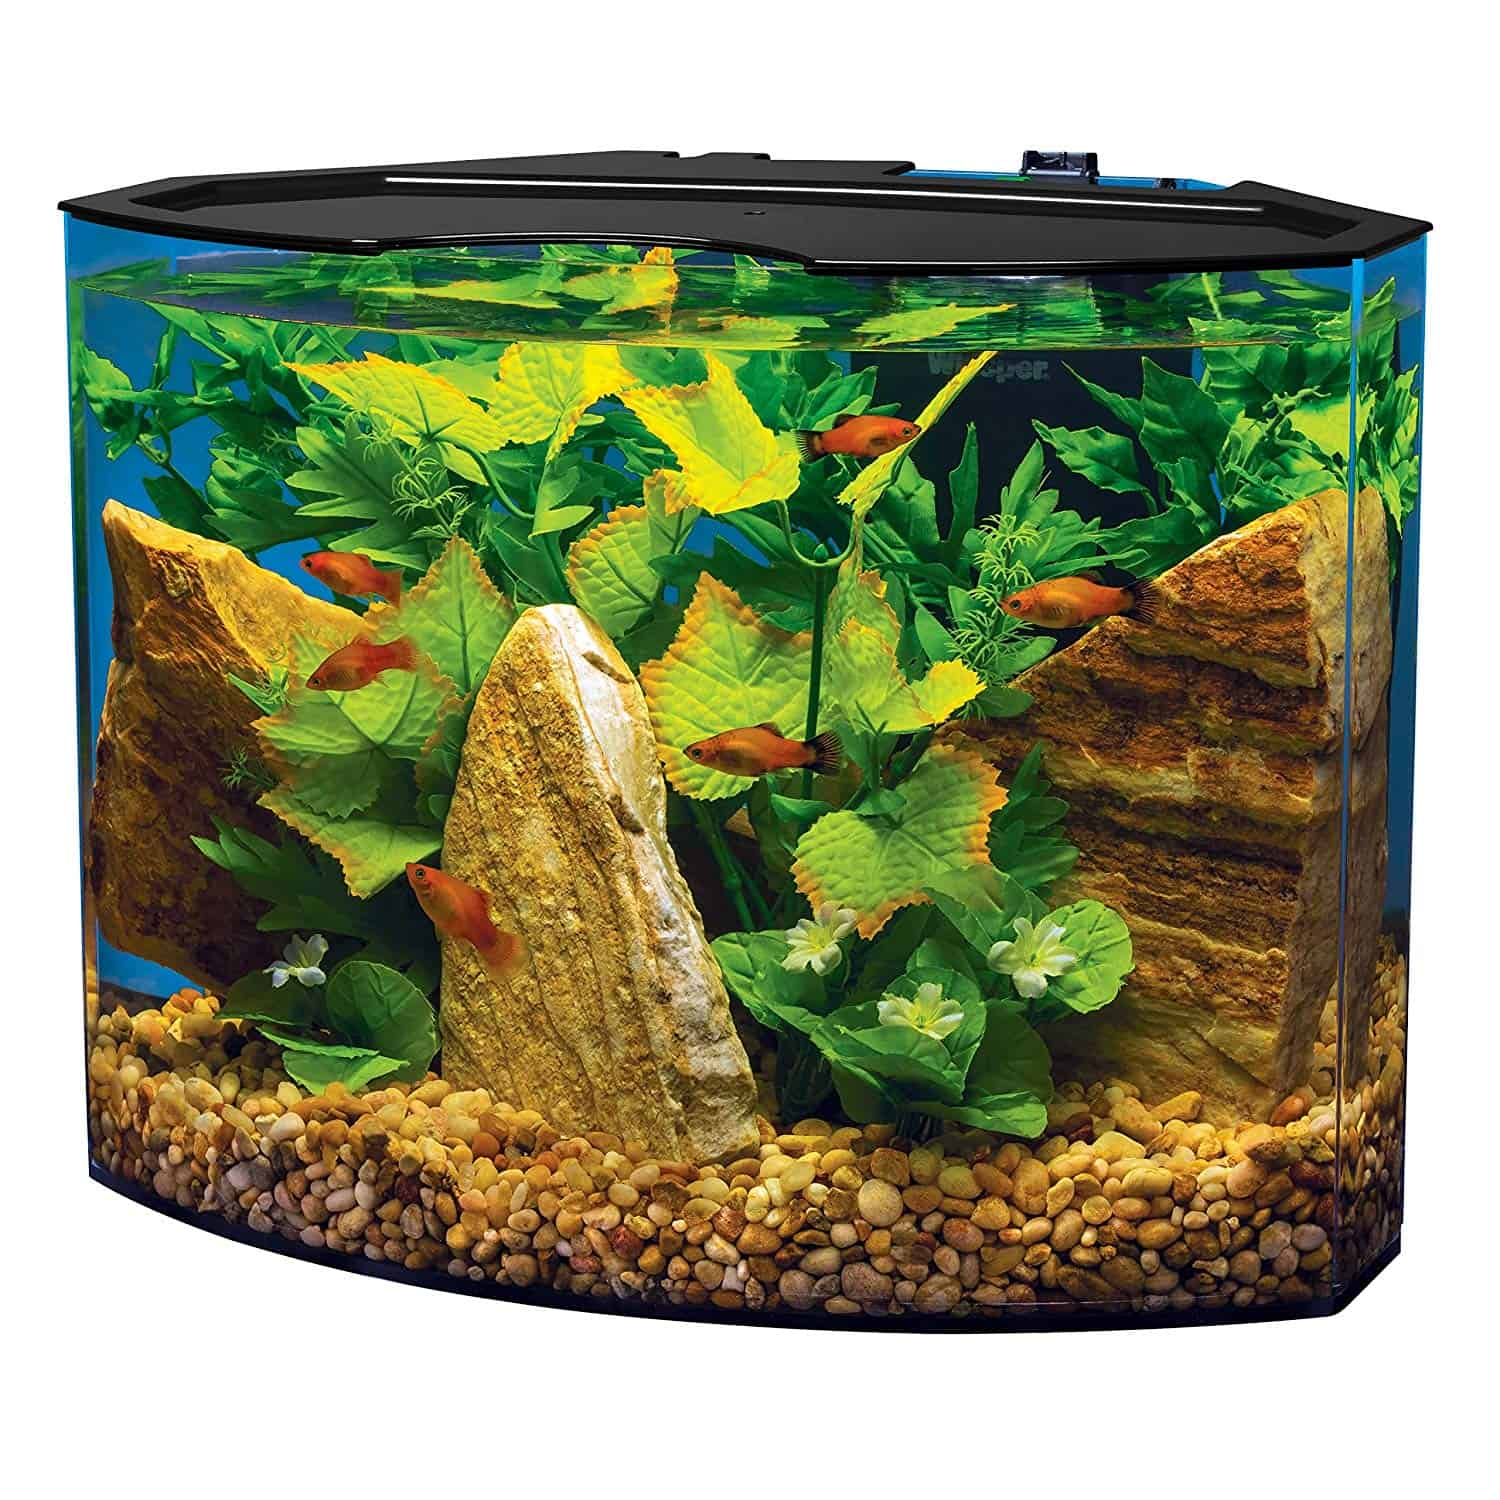 5 Best Nano Tanks For Your Home Or Office